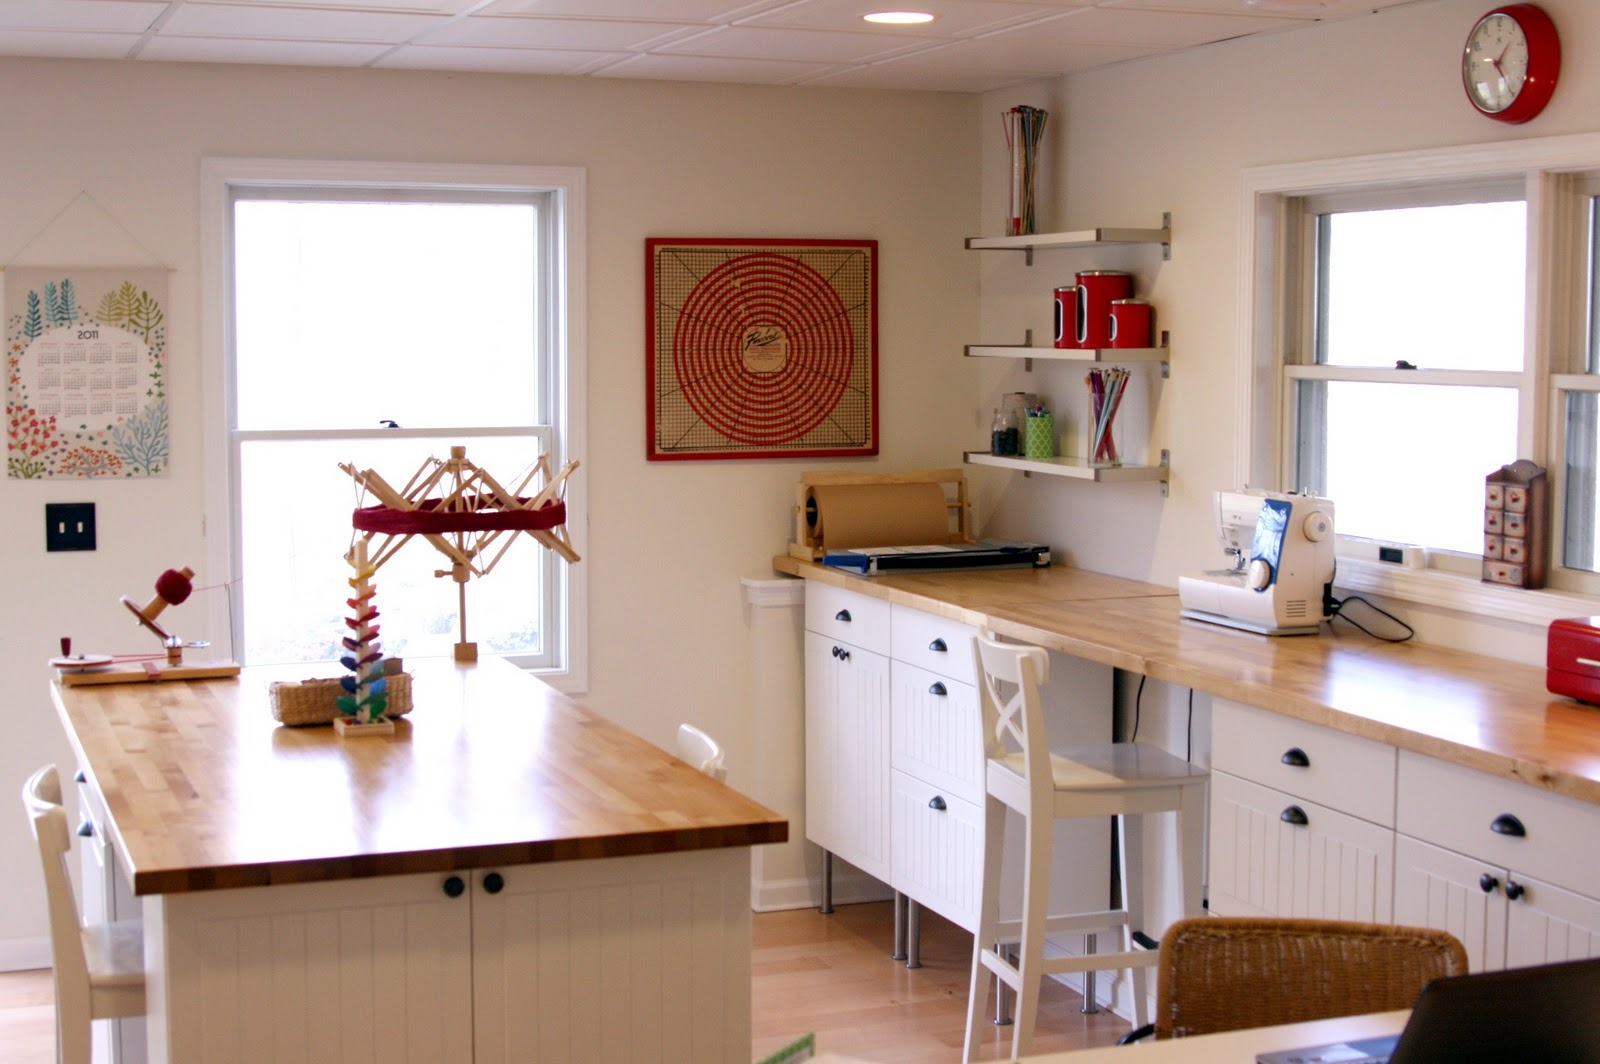 Charmant Cozy White Craft Room With Some Light Wood Touches For Flooring And  Countertop